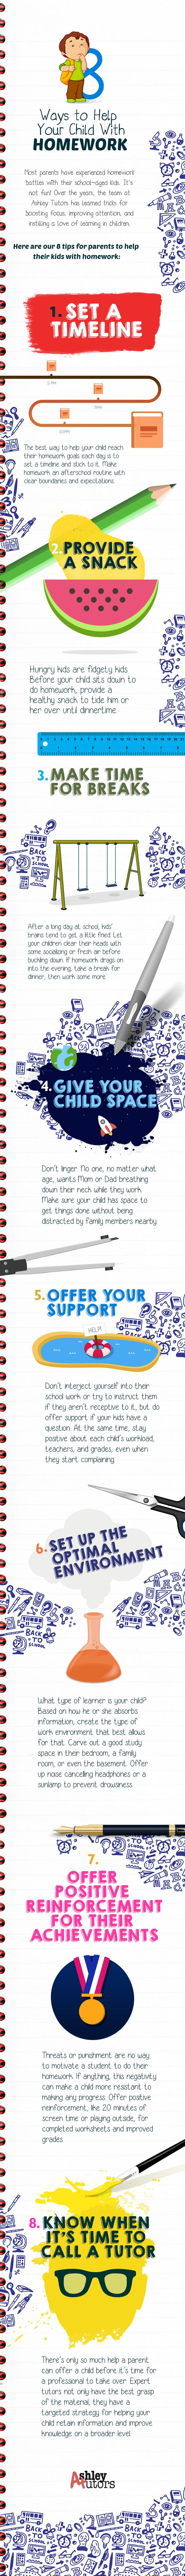 8 Ways to Help Your Child With Homework - Infographic